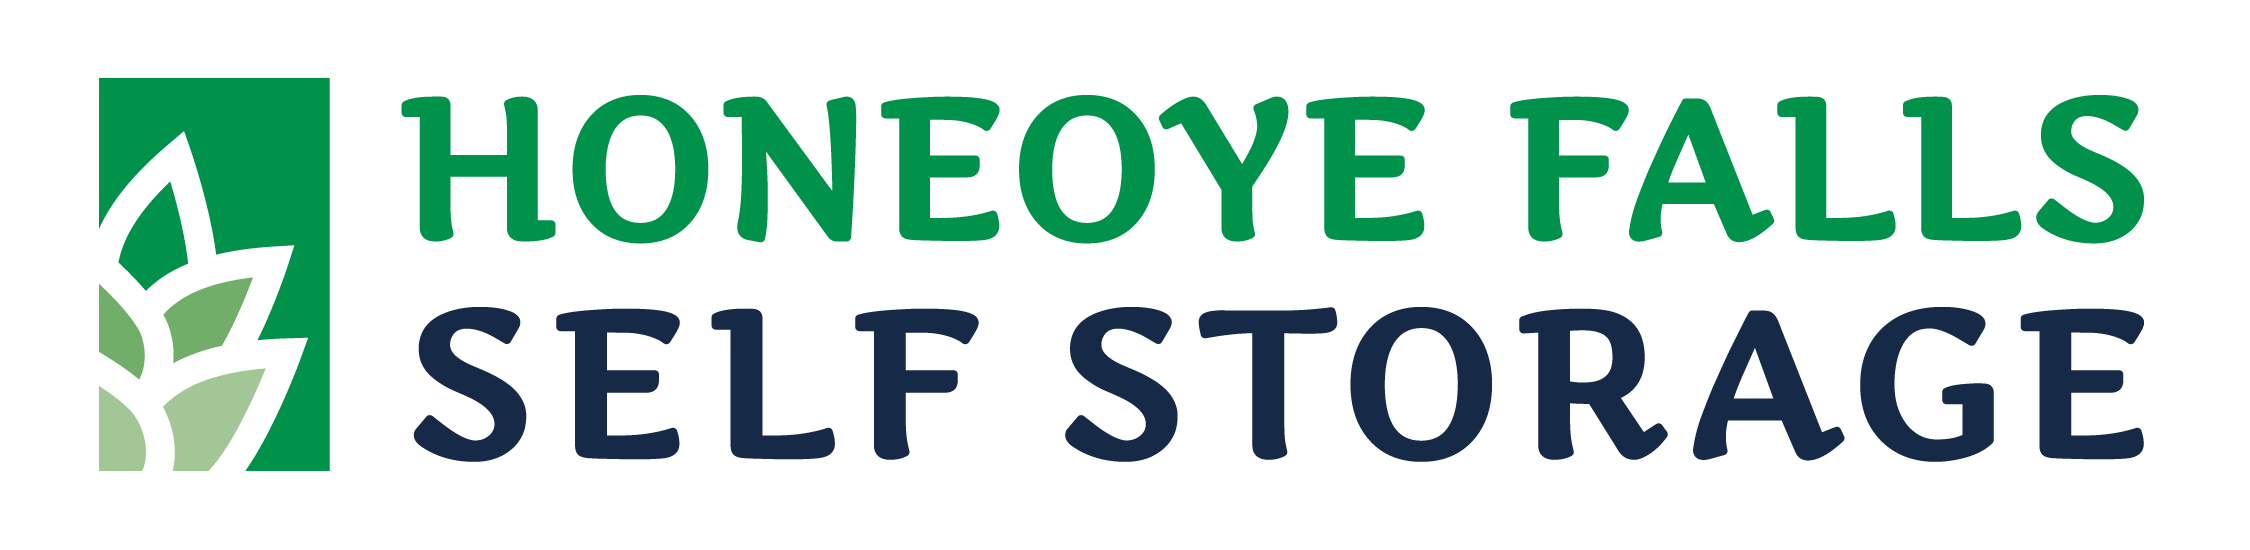 Honeoye Falls Storage Website Logo